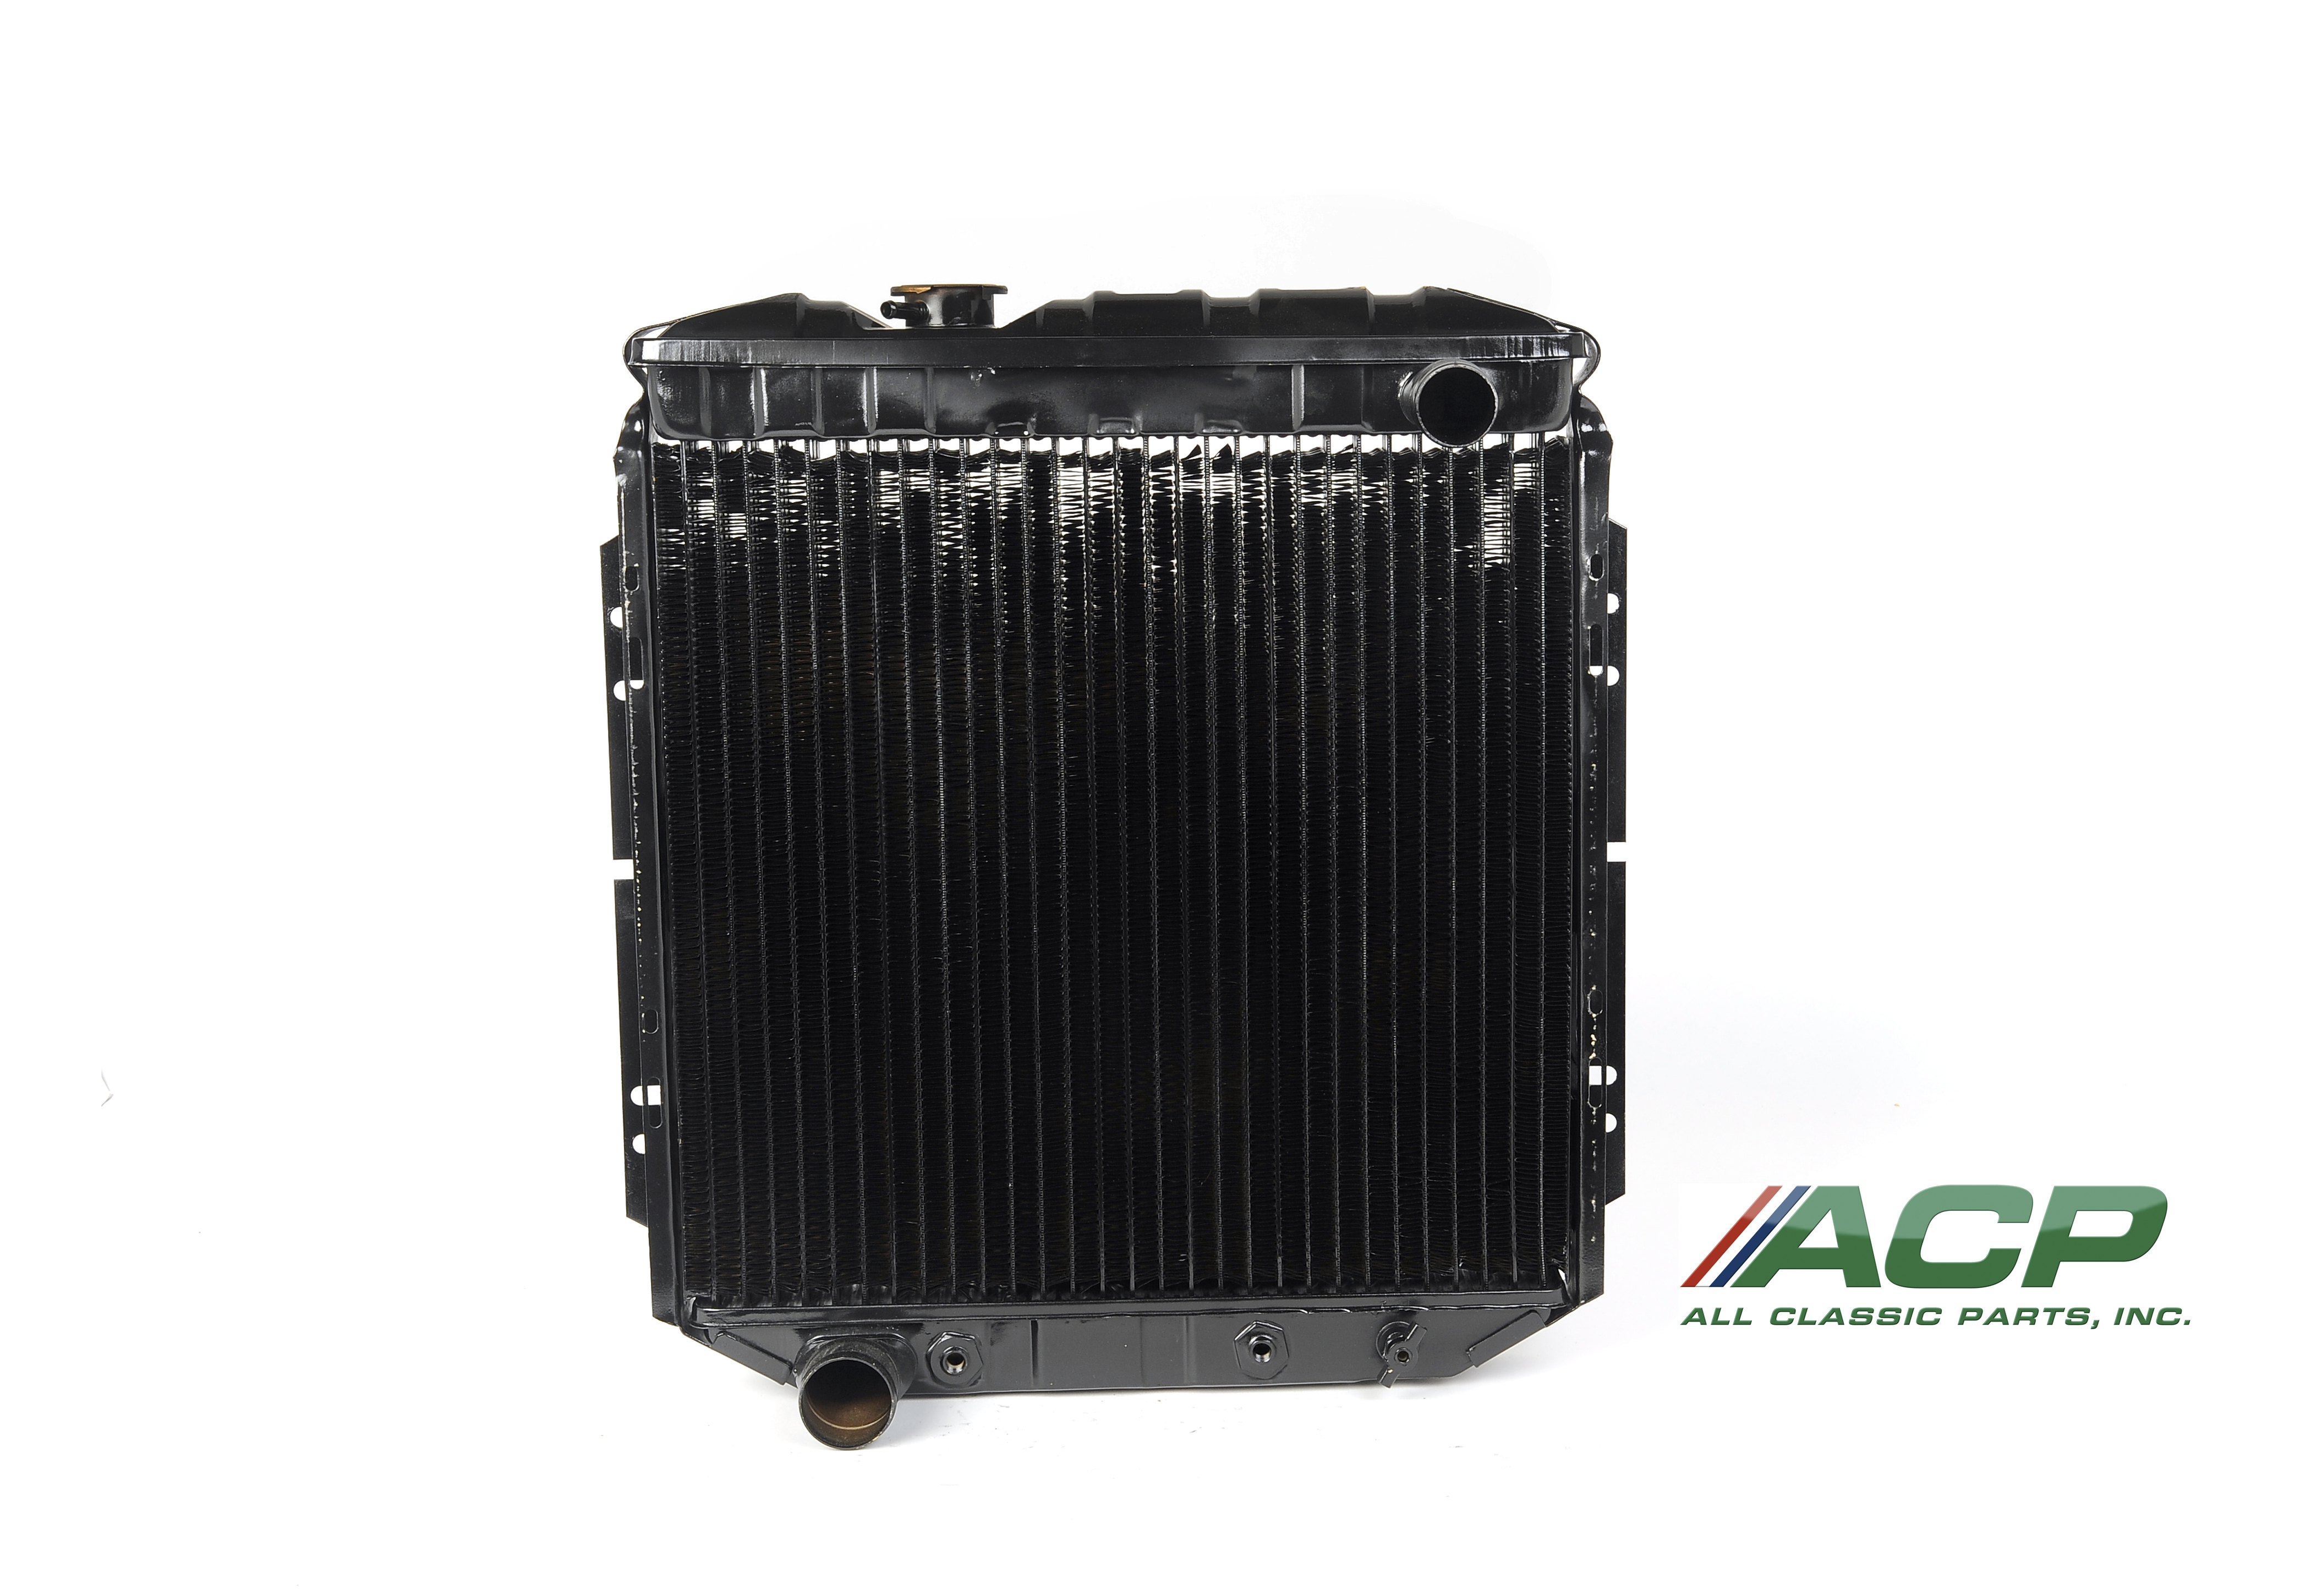 1965-1966 Ford Mustang 3 Row- Large Tube Radiator, 5.0 Conversion, LH Outlet